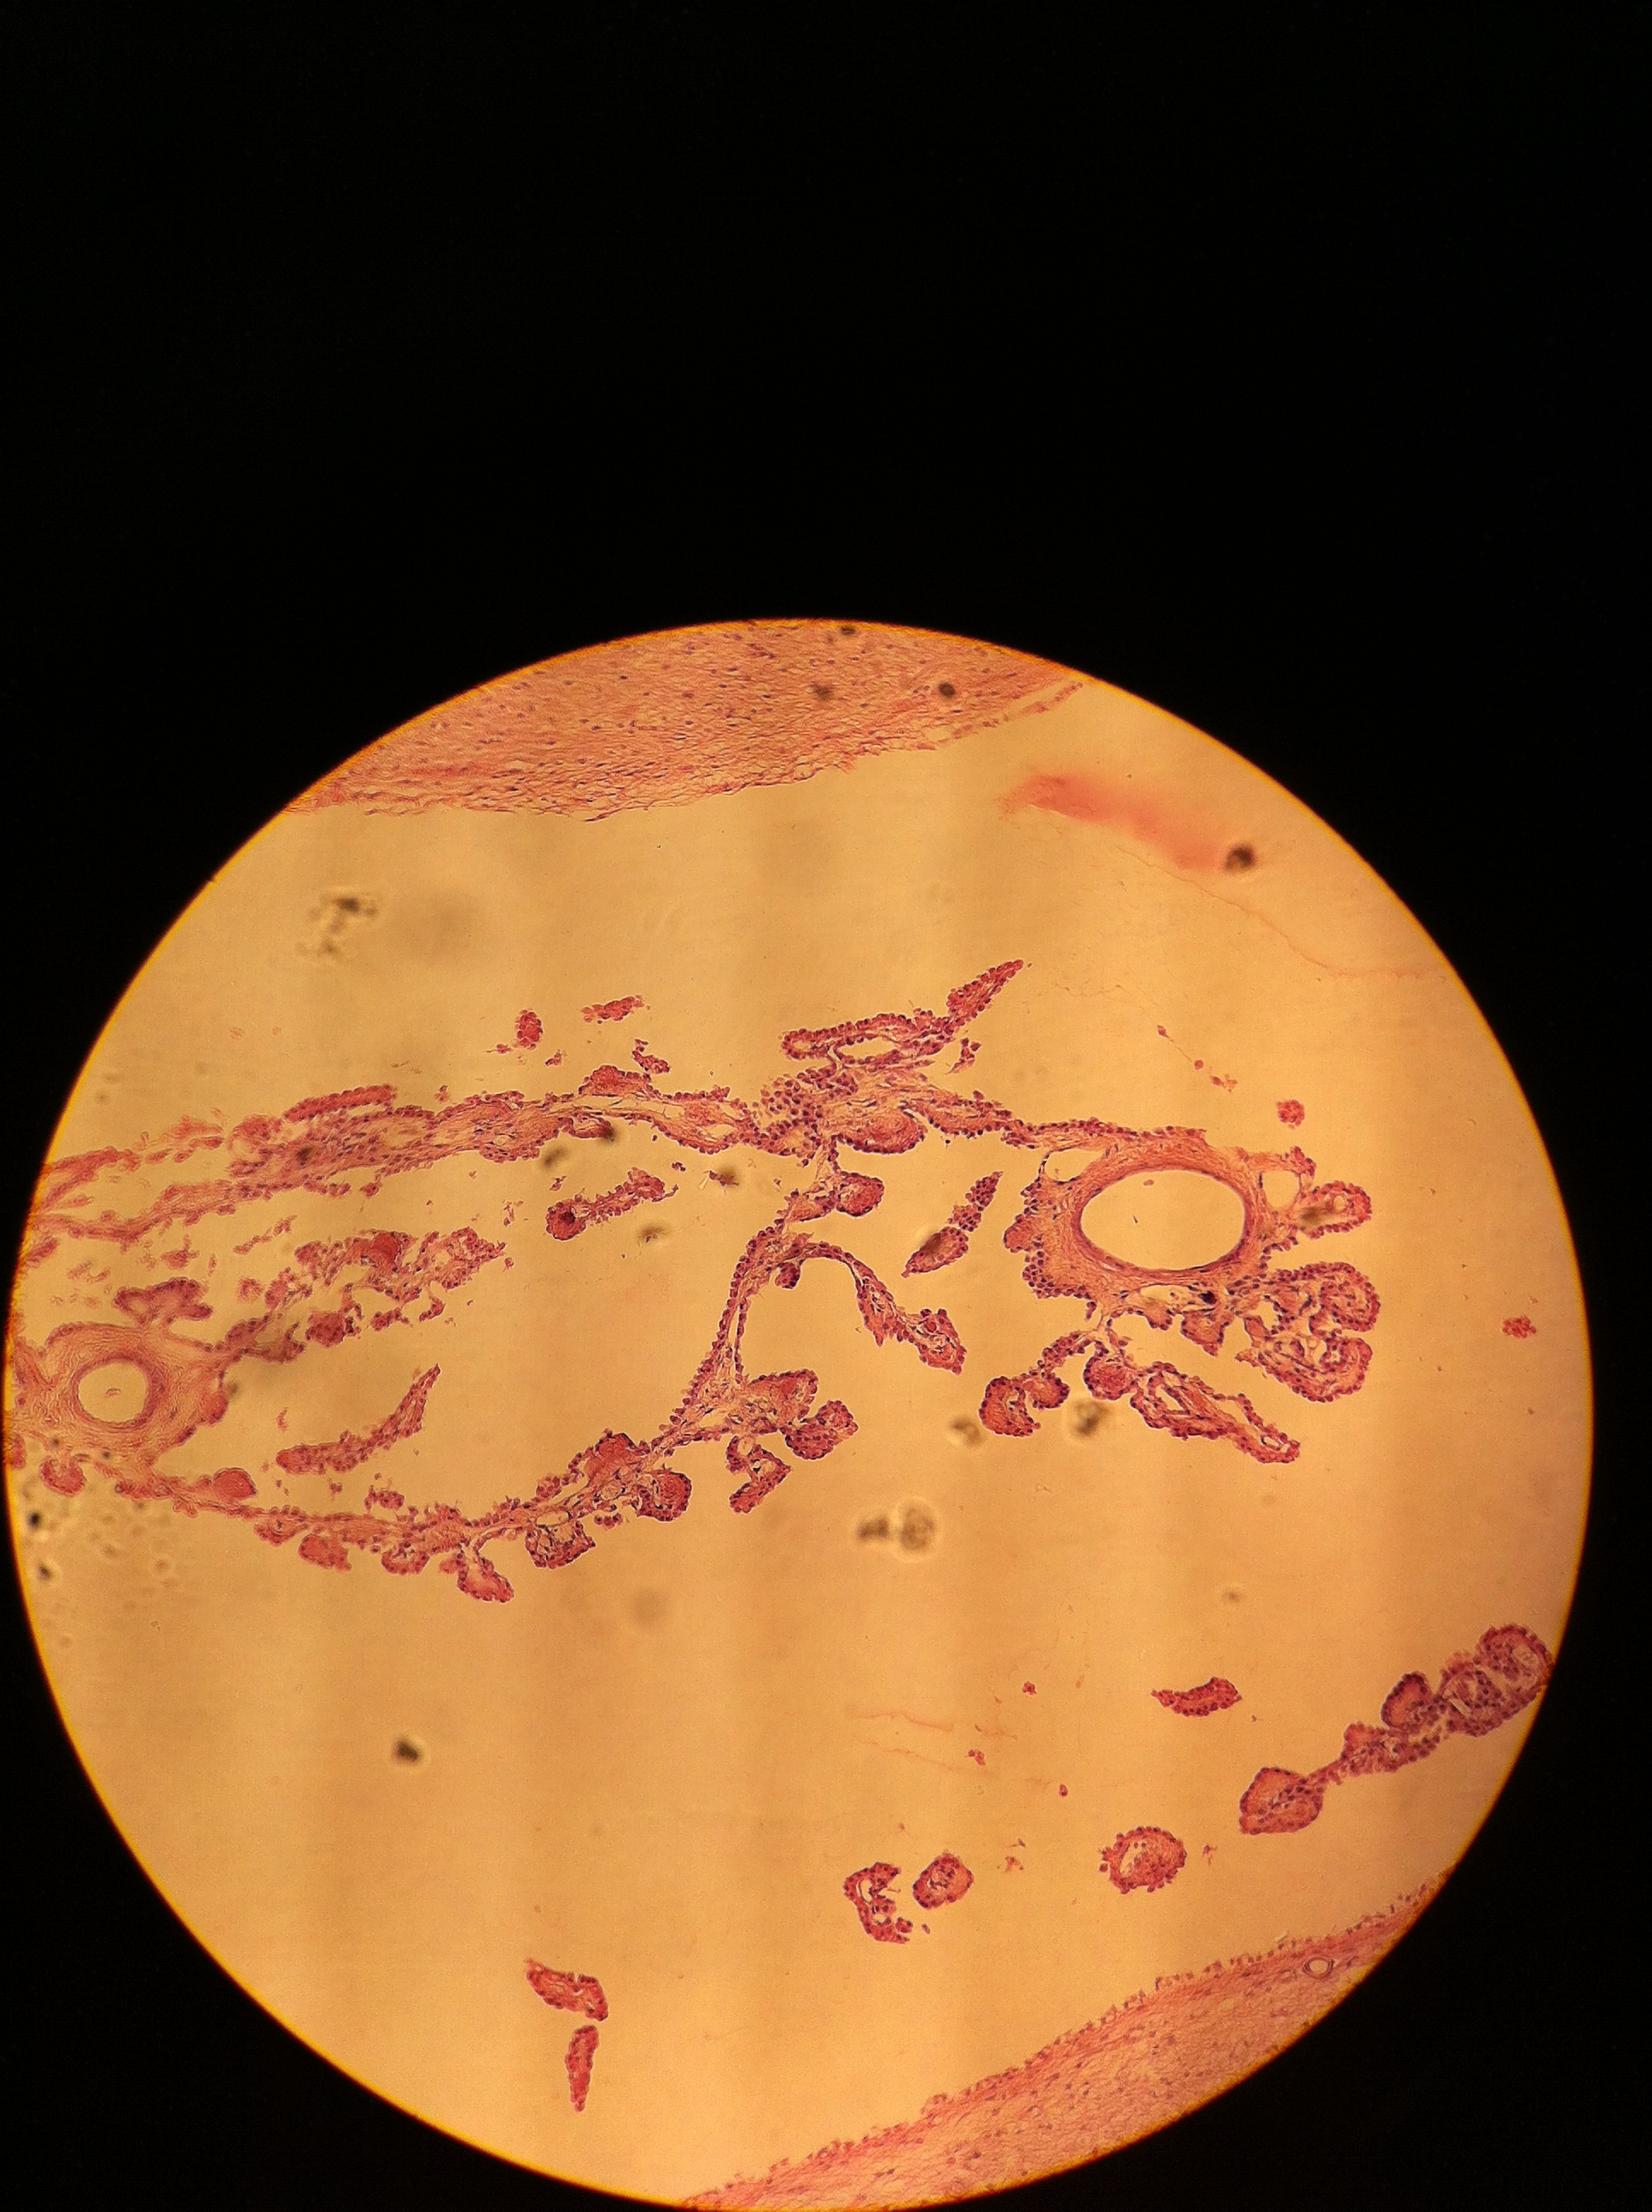 Ependymal Cells 100X